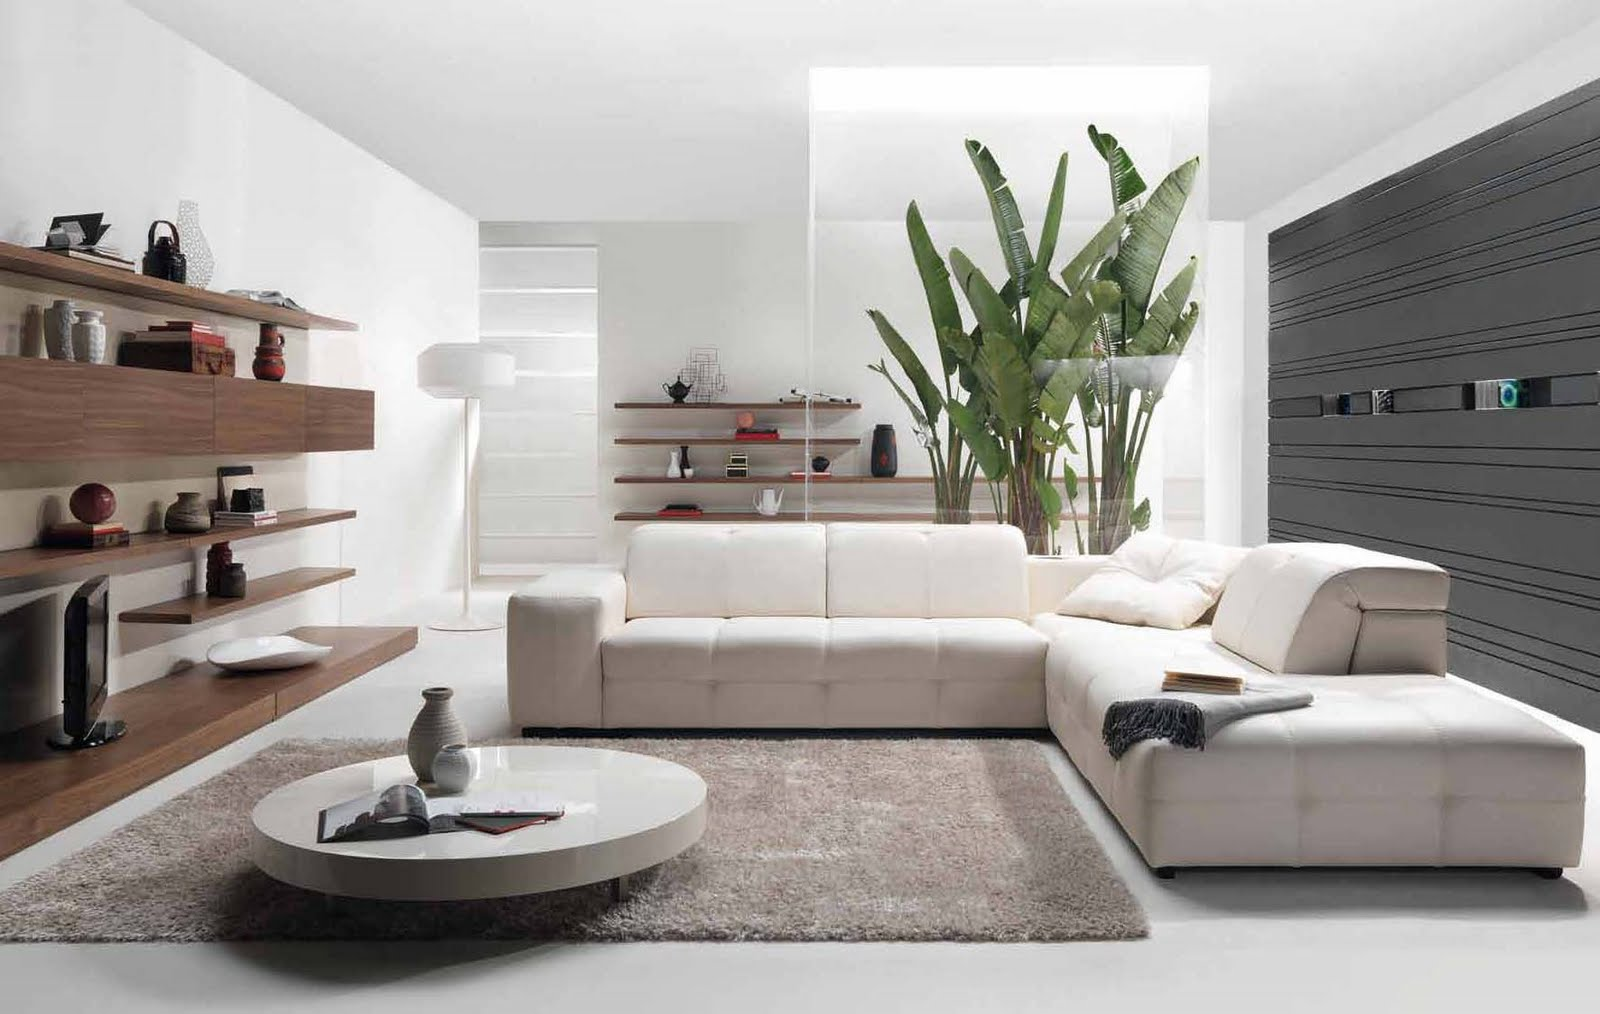 Future house design modern living room interior design styles 2010 by natuzzi - Small space living design style ...